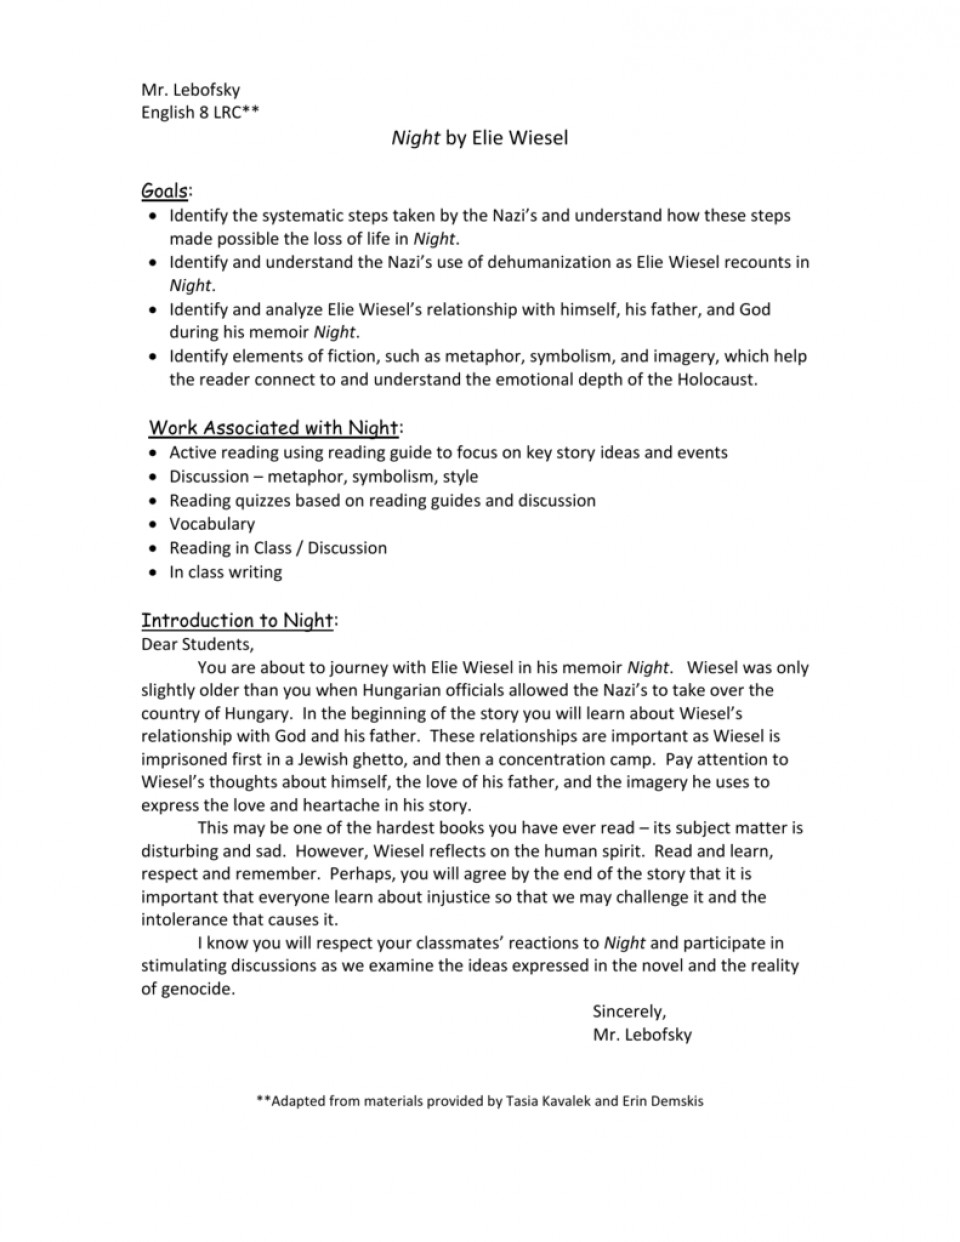 009 Essay Example 009753876 1 Night By Elie Fearsome Wiesel Topics Writing Prompts Examples 960